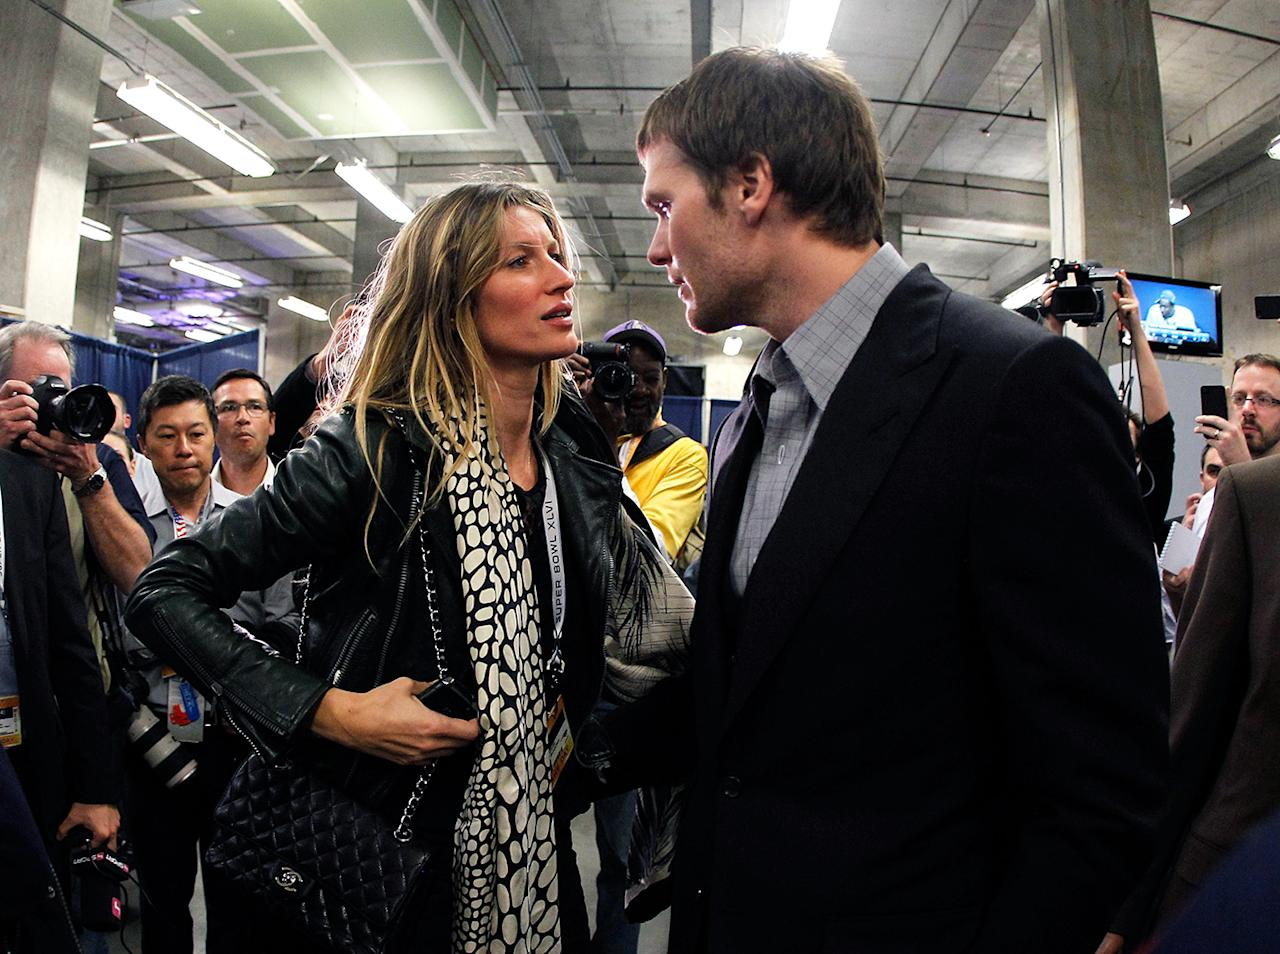 "Gisele Bundchen was caught in the spotlight after her rant defending her husband, Tom Brady, when the New England Patriots suffered a tough loss at last year's Super Bowl. ""You are supposed to catch the ball when you're supposed to catch the ball,"" she told cameras, placing the blame on the team's receivers. ""My husband cannot [expletive] throw the ball and catch the ball at the same time."""